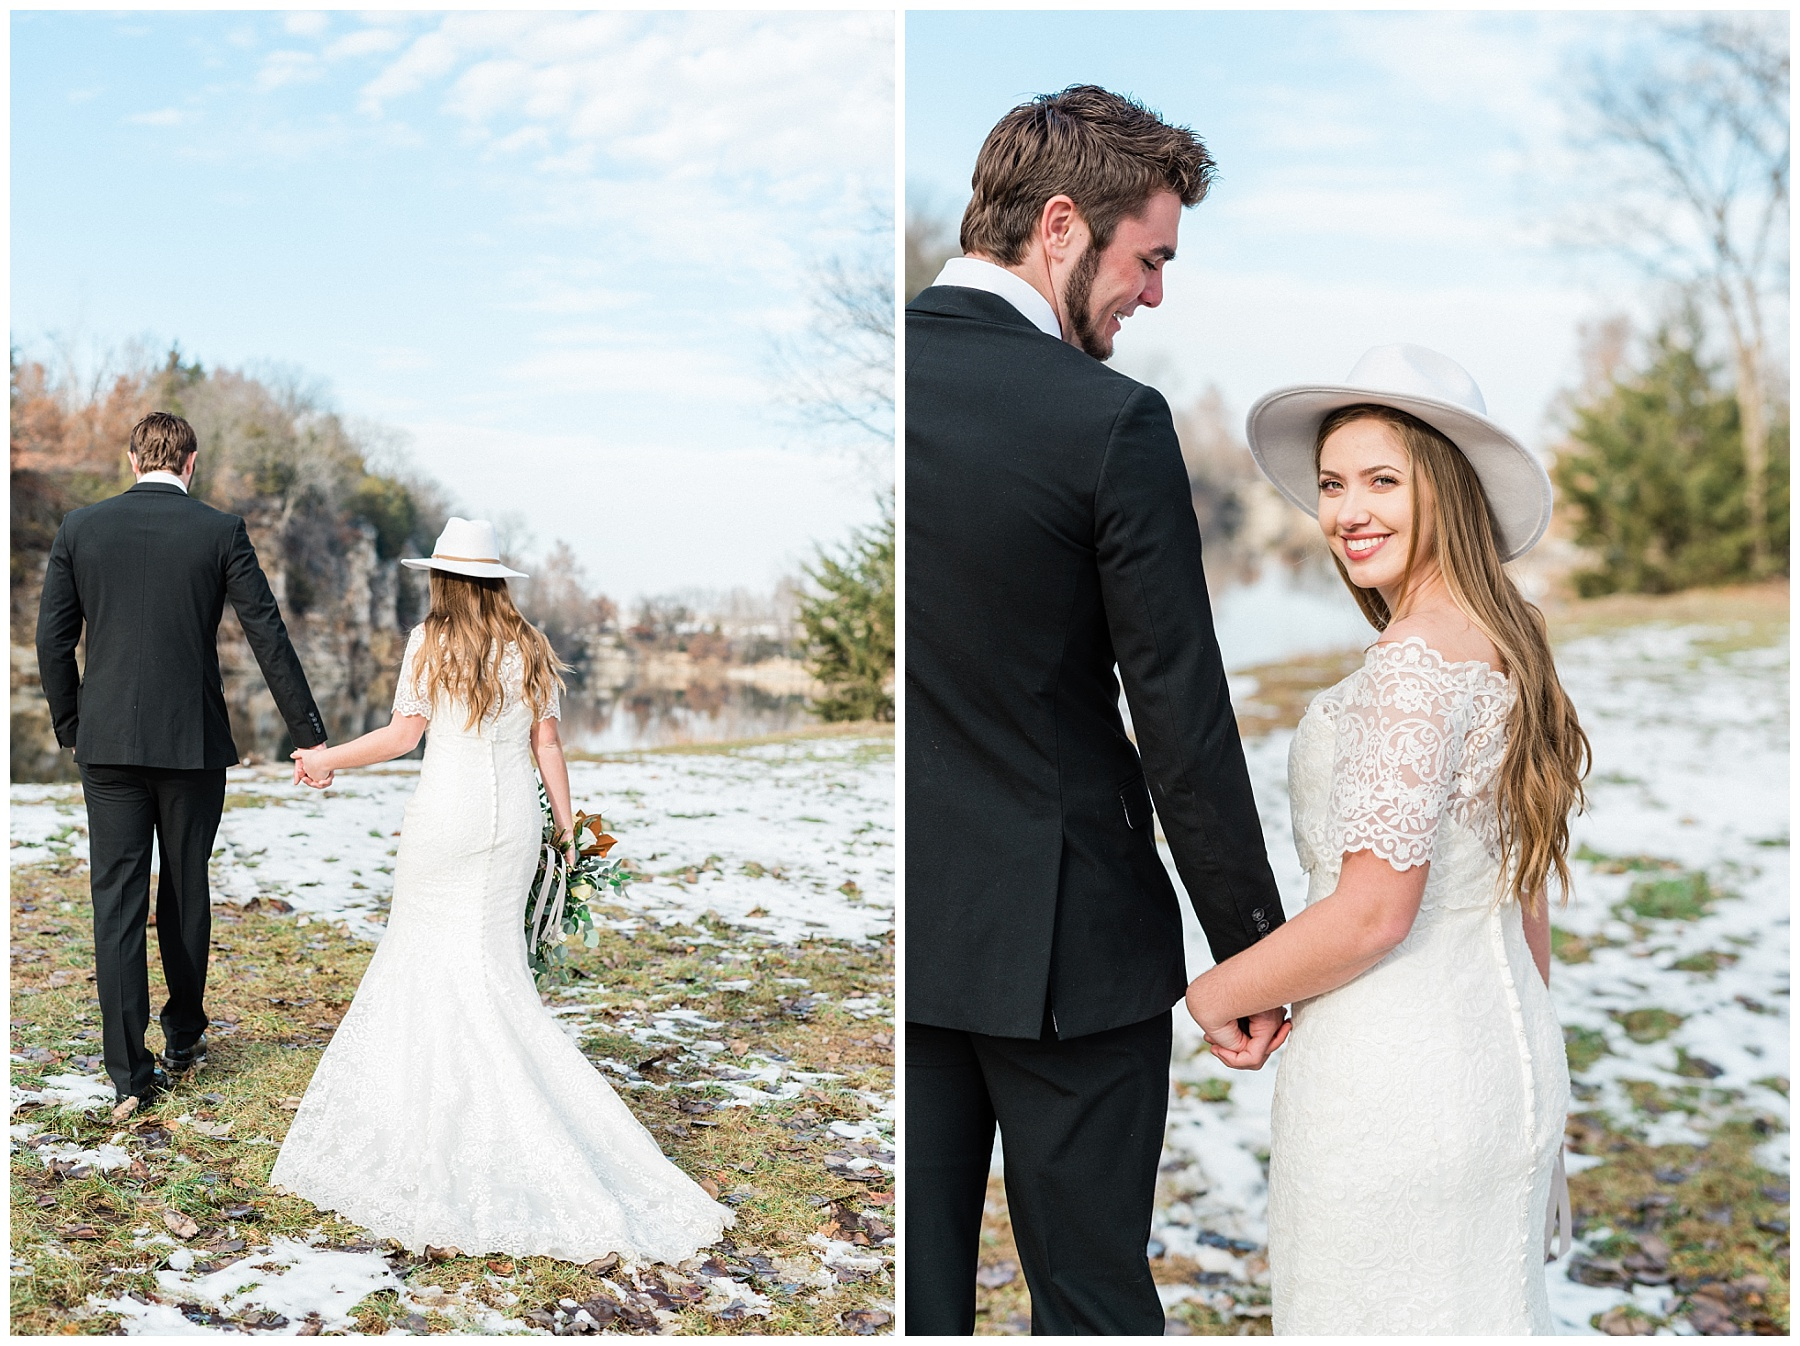 Snowy Winter Wedding at Wildcliff Events Lake With Earthy Jewel Tones and Organic Refined Style by Kelsi Kliethermes Photography Kansas City Missouri Wedding Photographer_0090.jpg